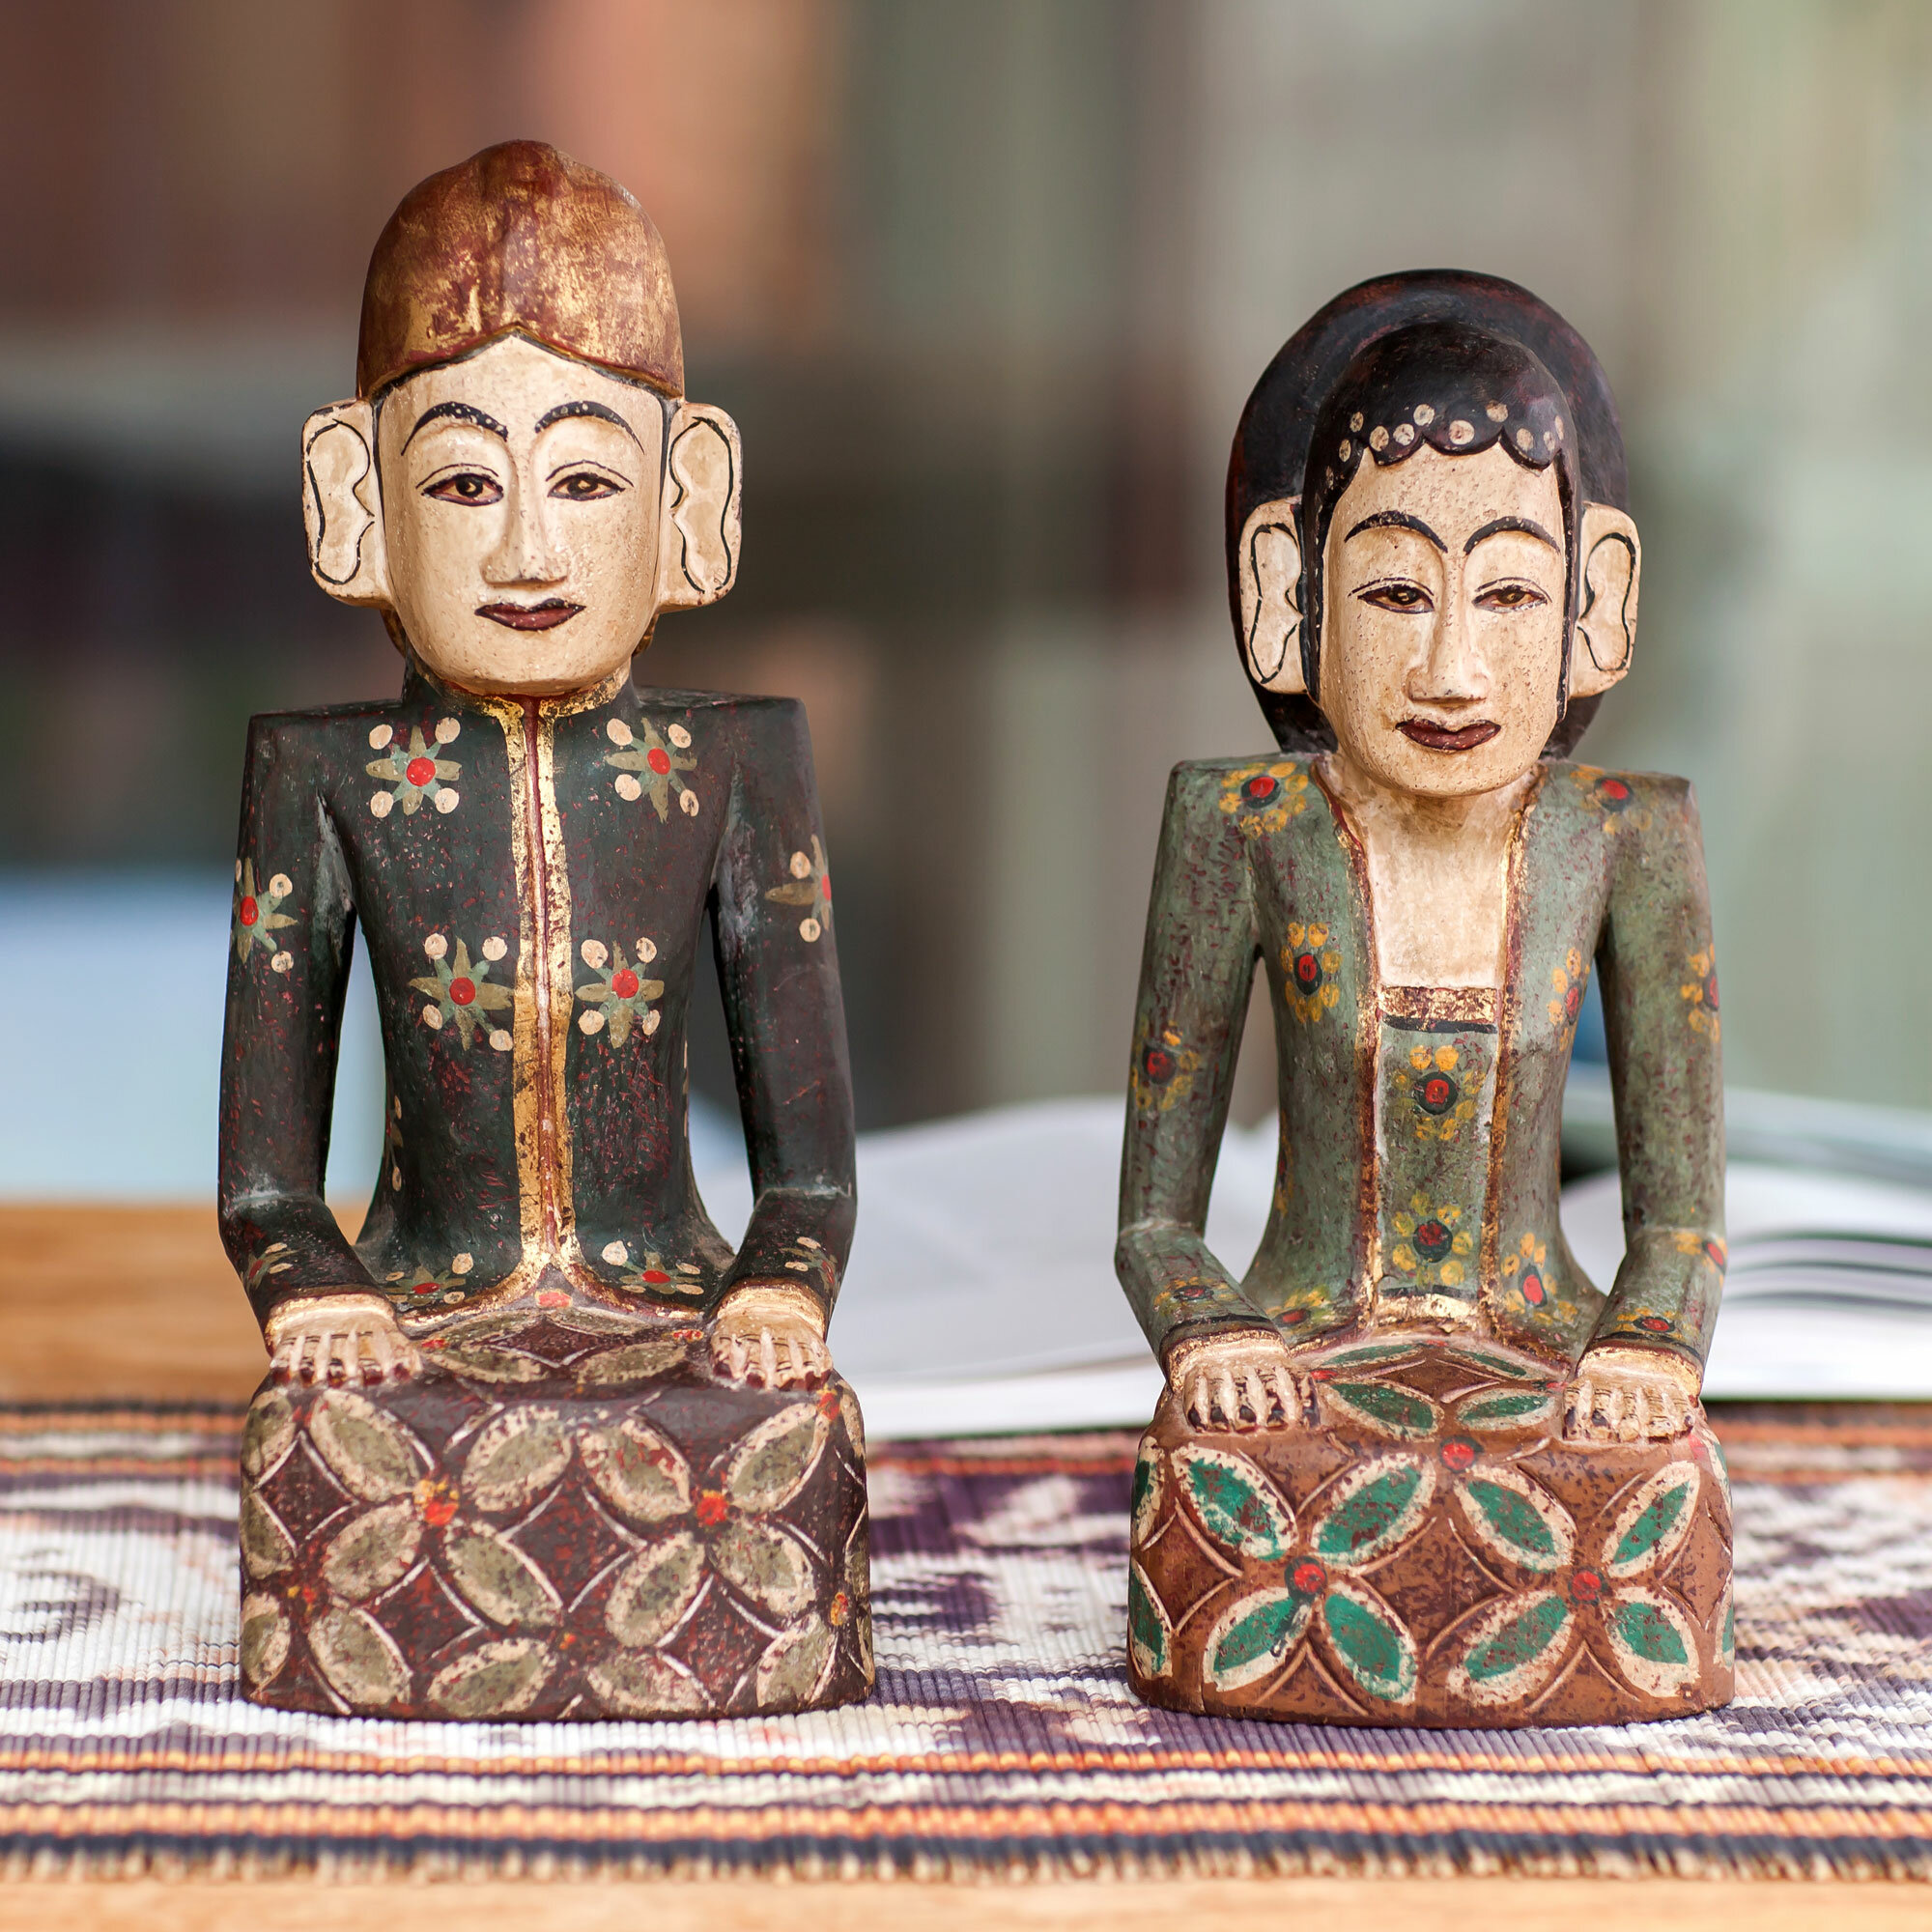 Novica 2 Piece Jogja Wedding Couple Unique Wood Figurine Set | Wayfair